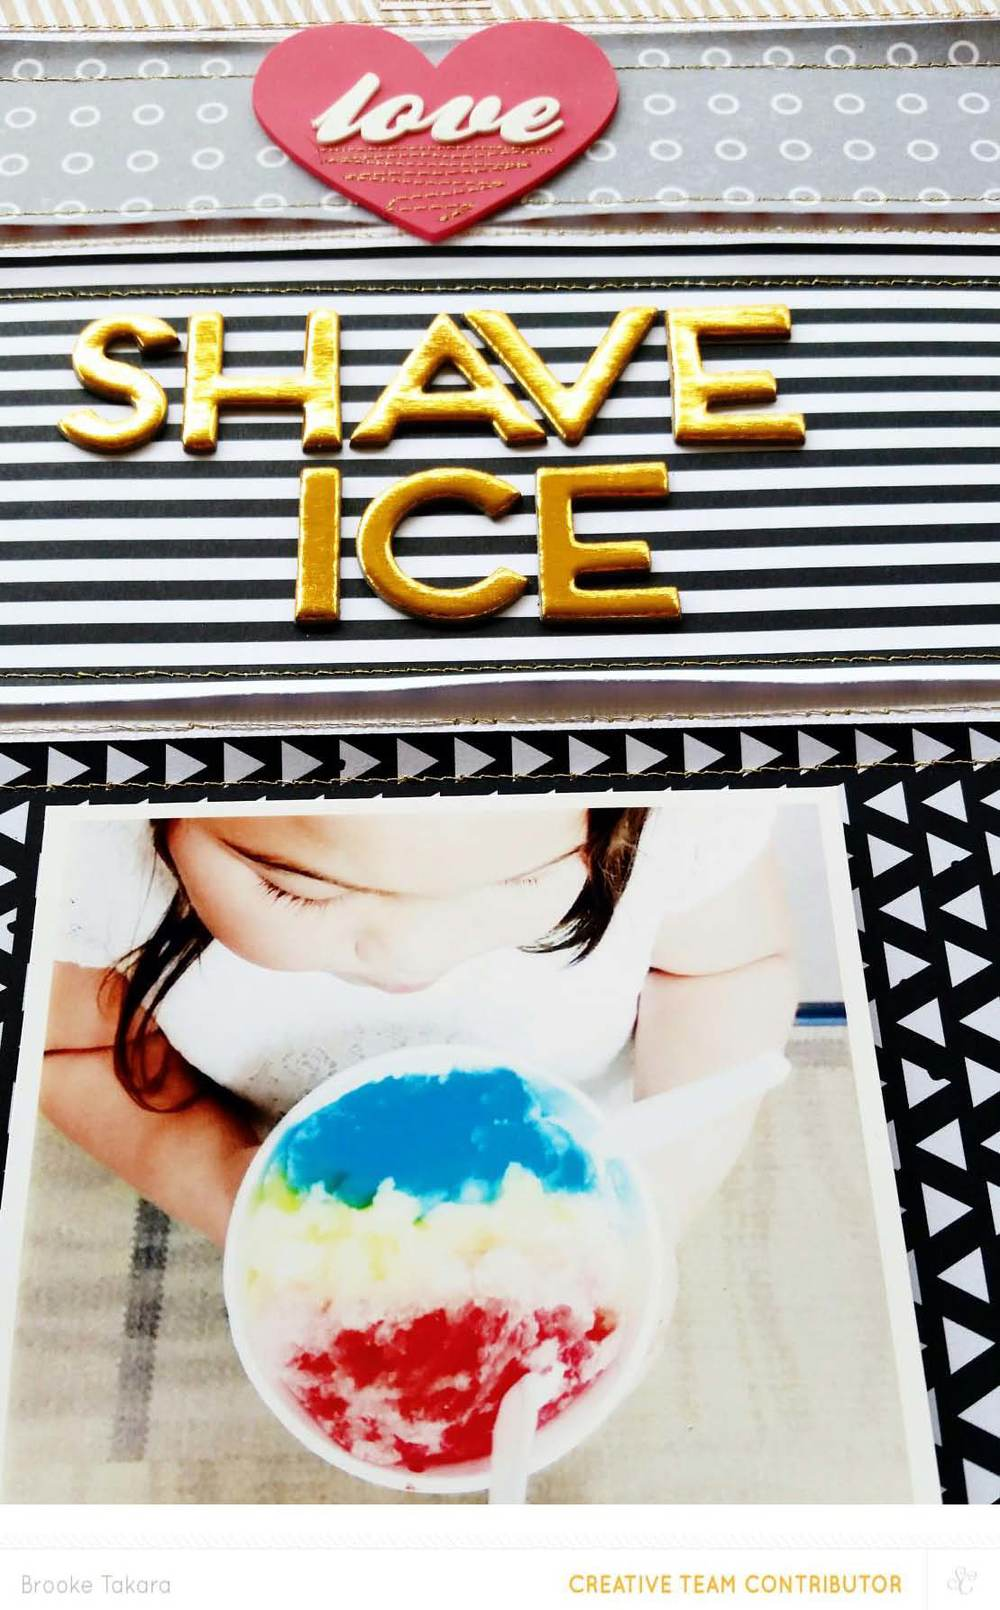 Shave Ice Sneak